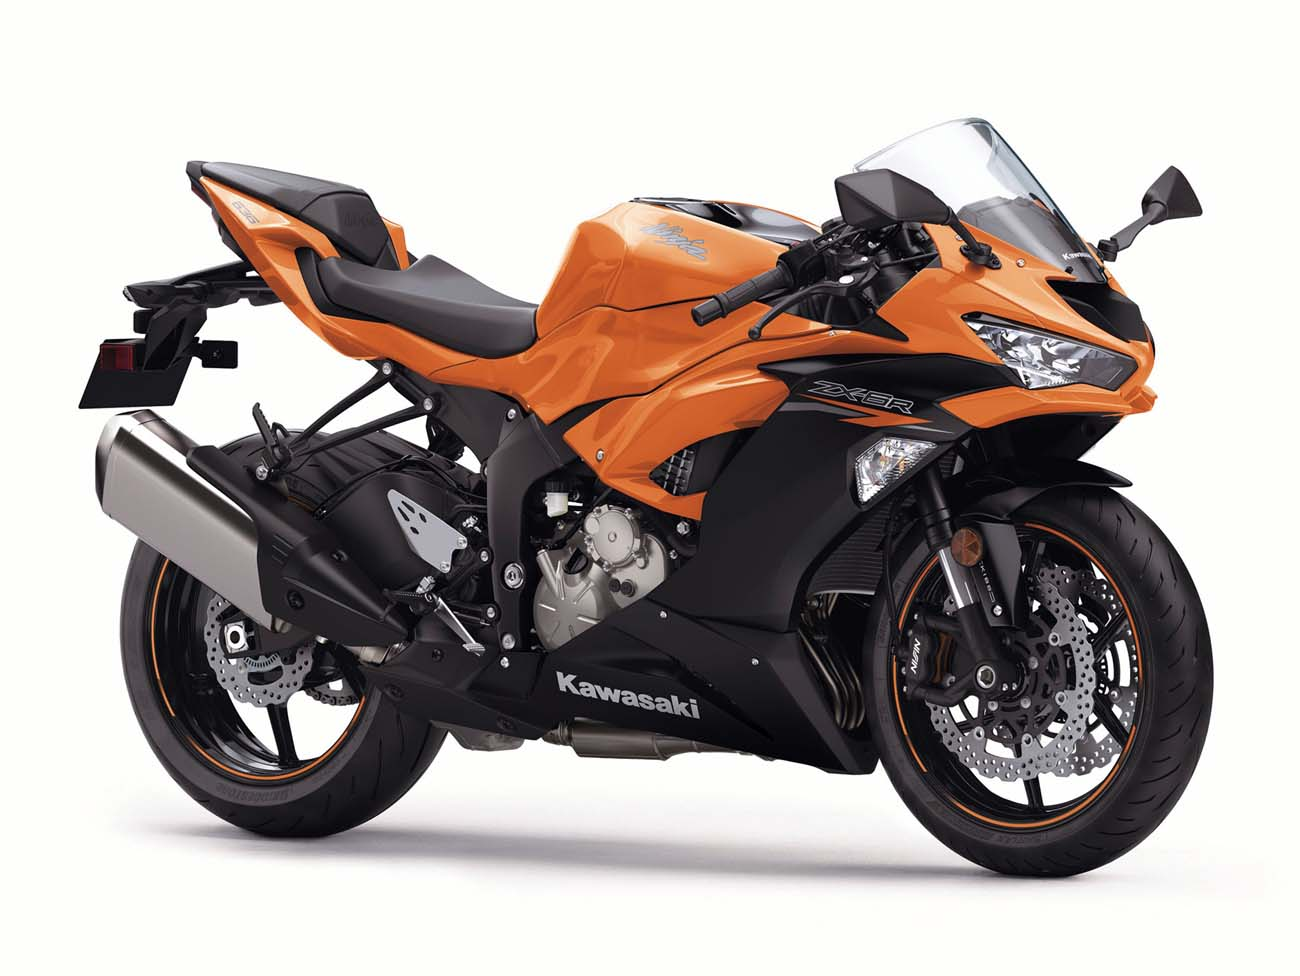 Kawasaki ZX-6R Ninja technical specifications